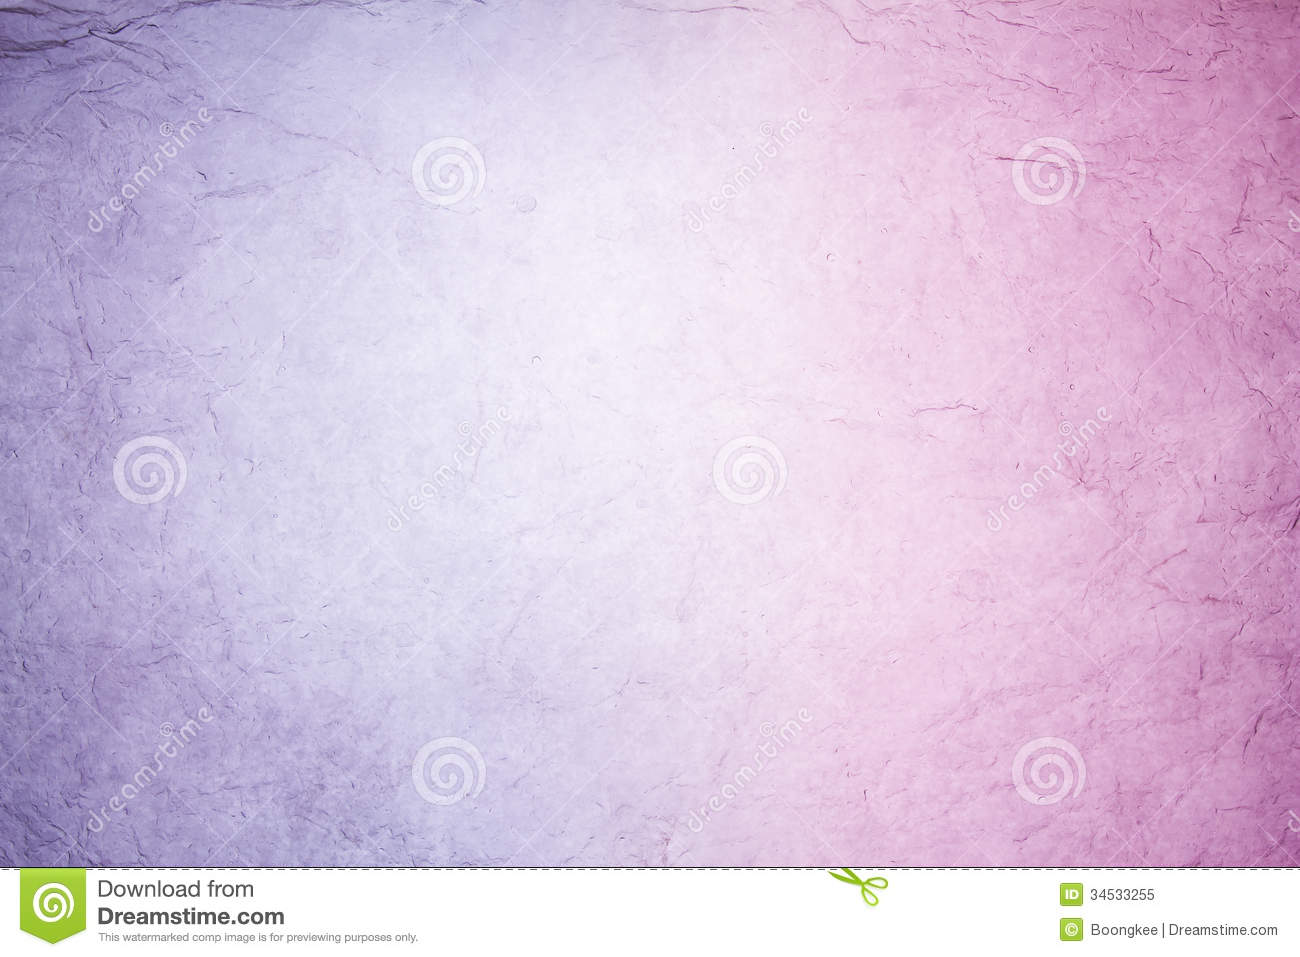 transparent background stock image image of pink